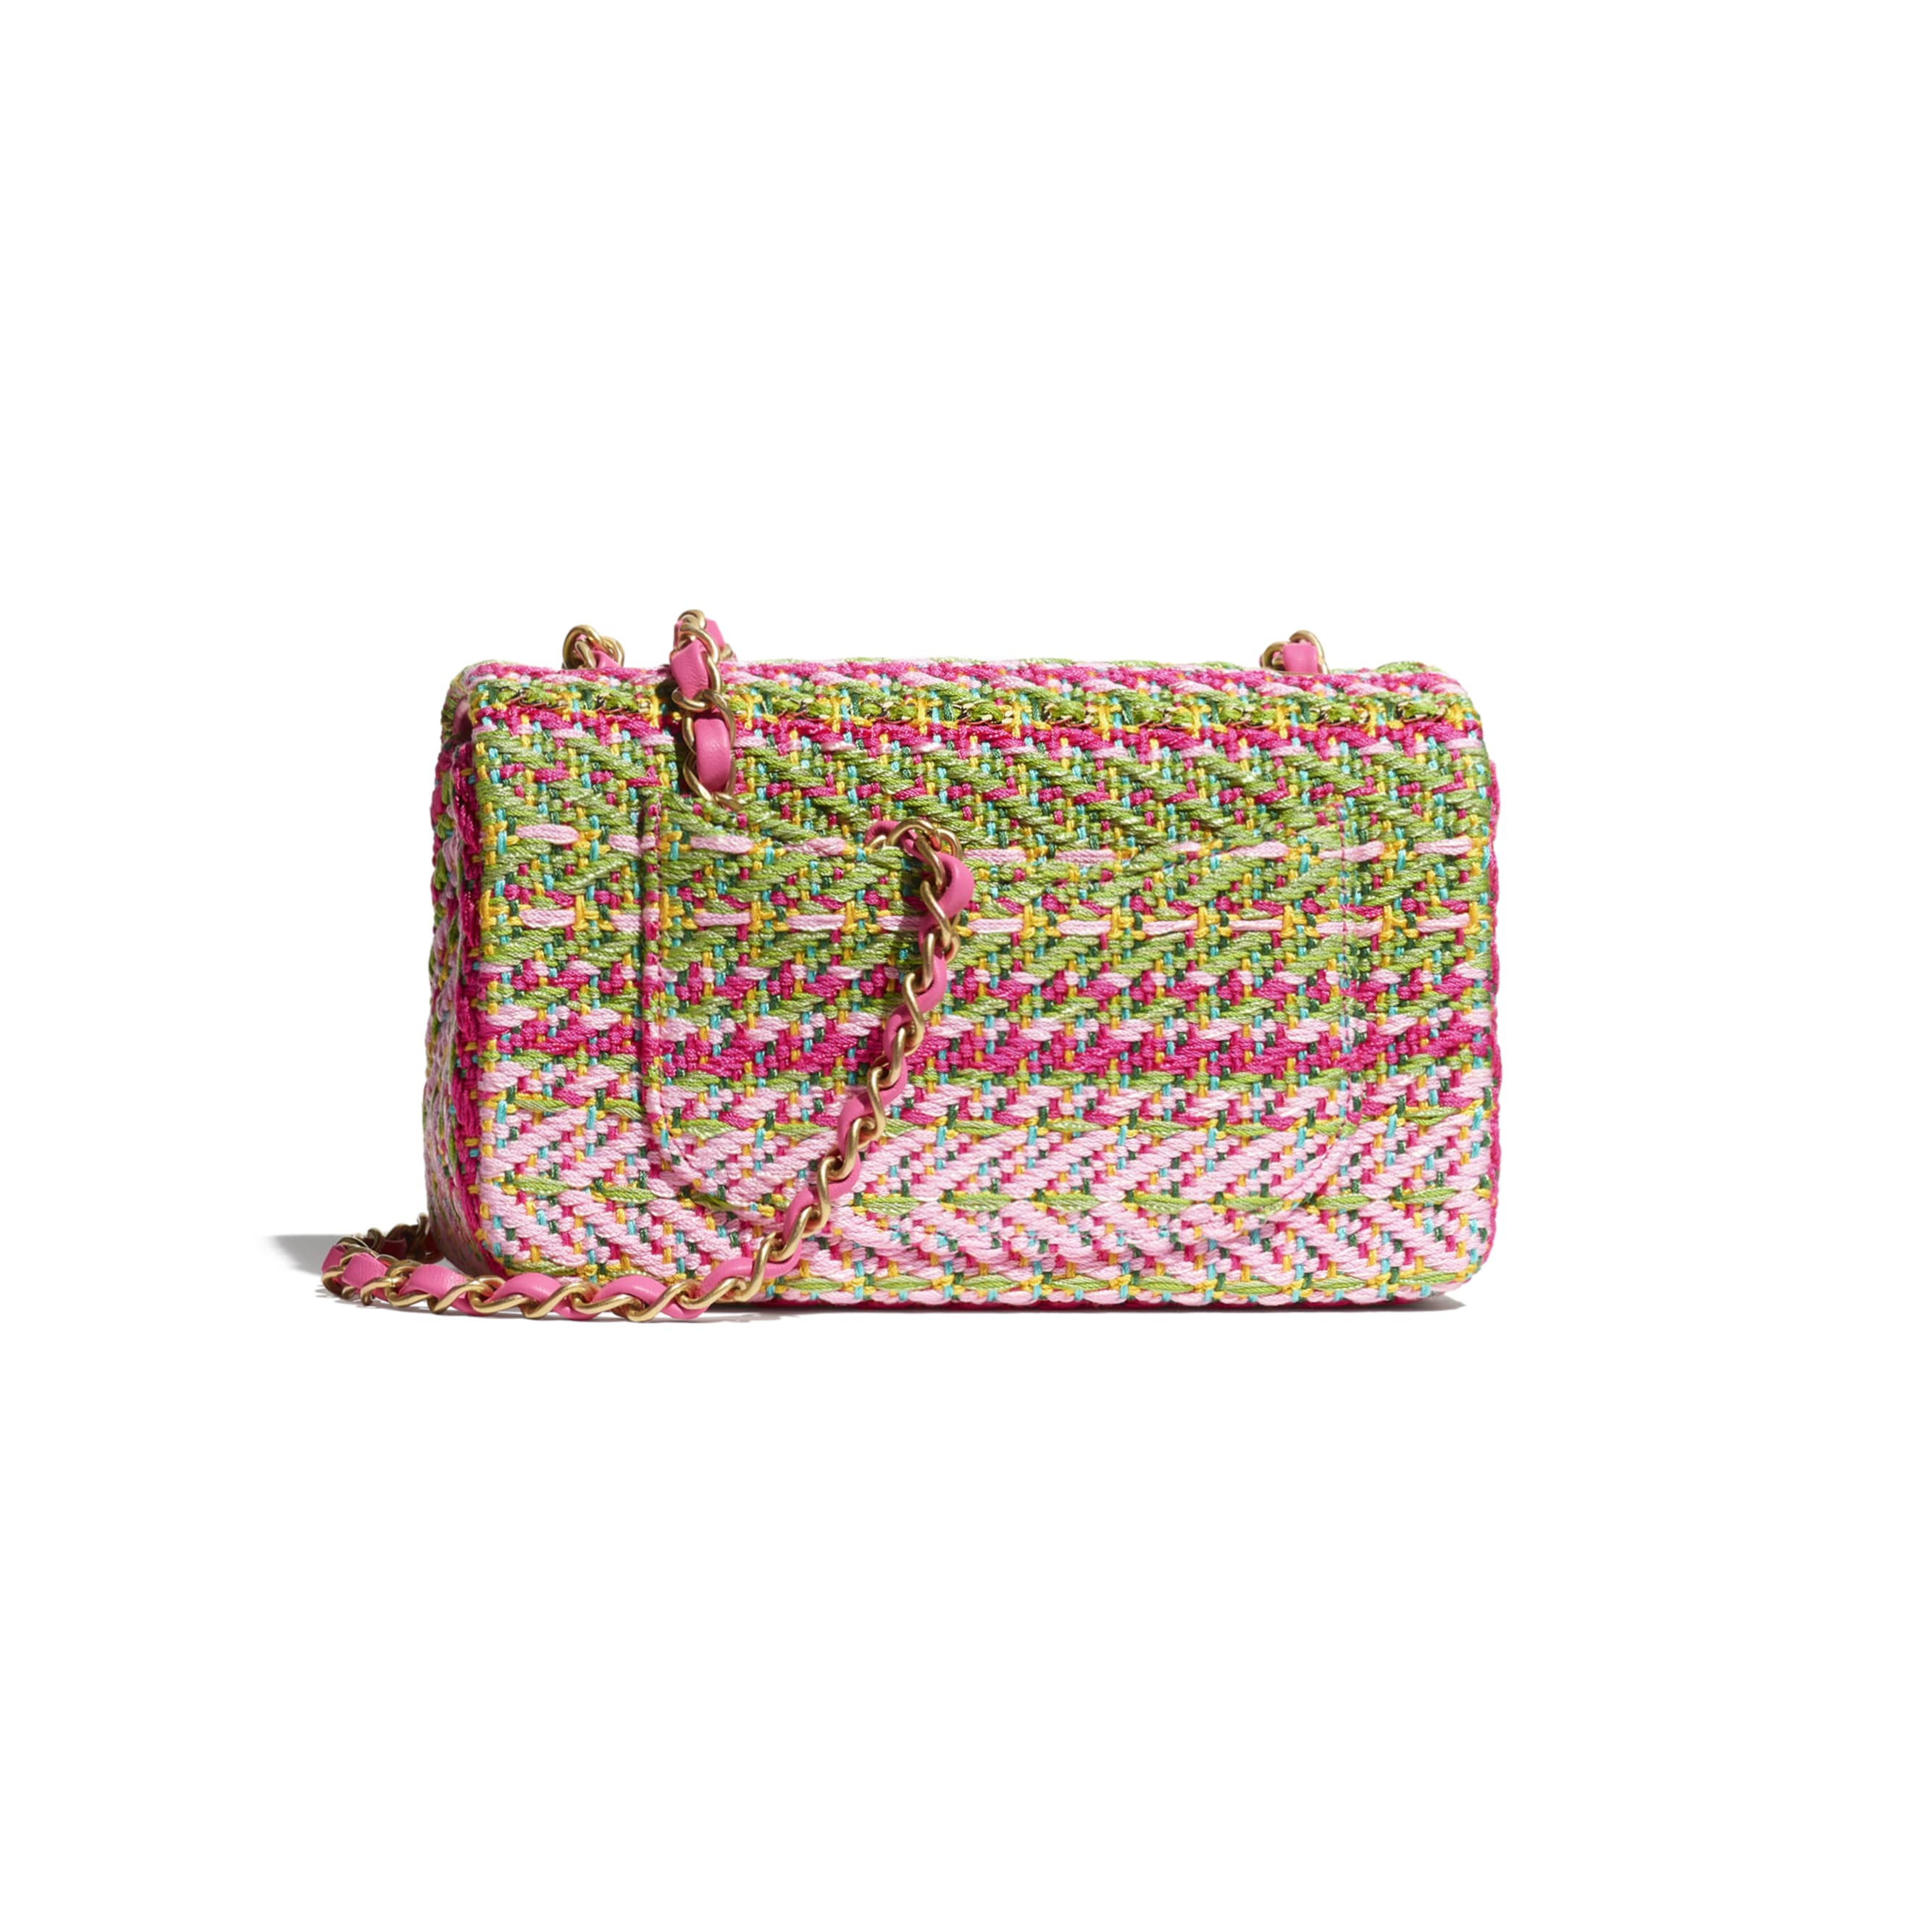 Mini Flap Bag - Fuchsia, Pale Rose, Green, Turquoise & Yellow - Cotton, Mixed Fibers & Gold-Tone Metal - CHANEL - Alternative view - see standard sized version